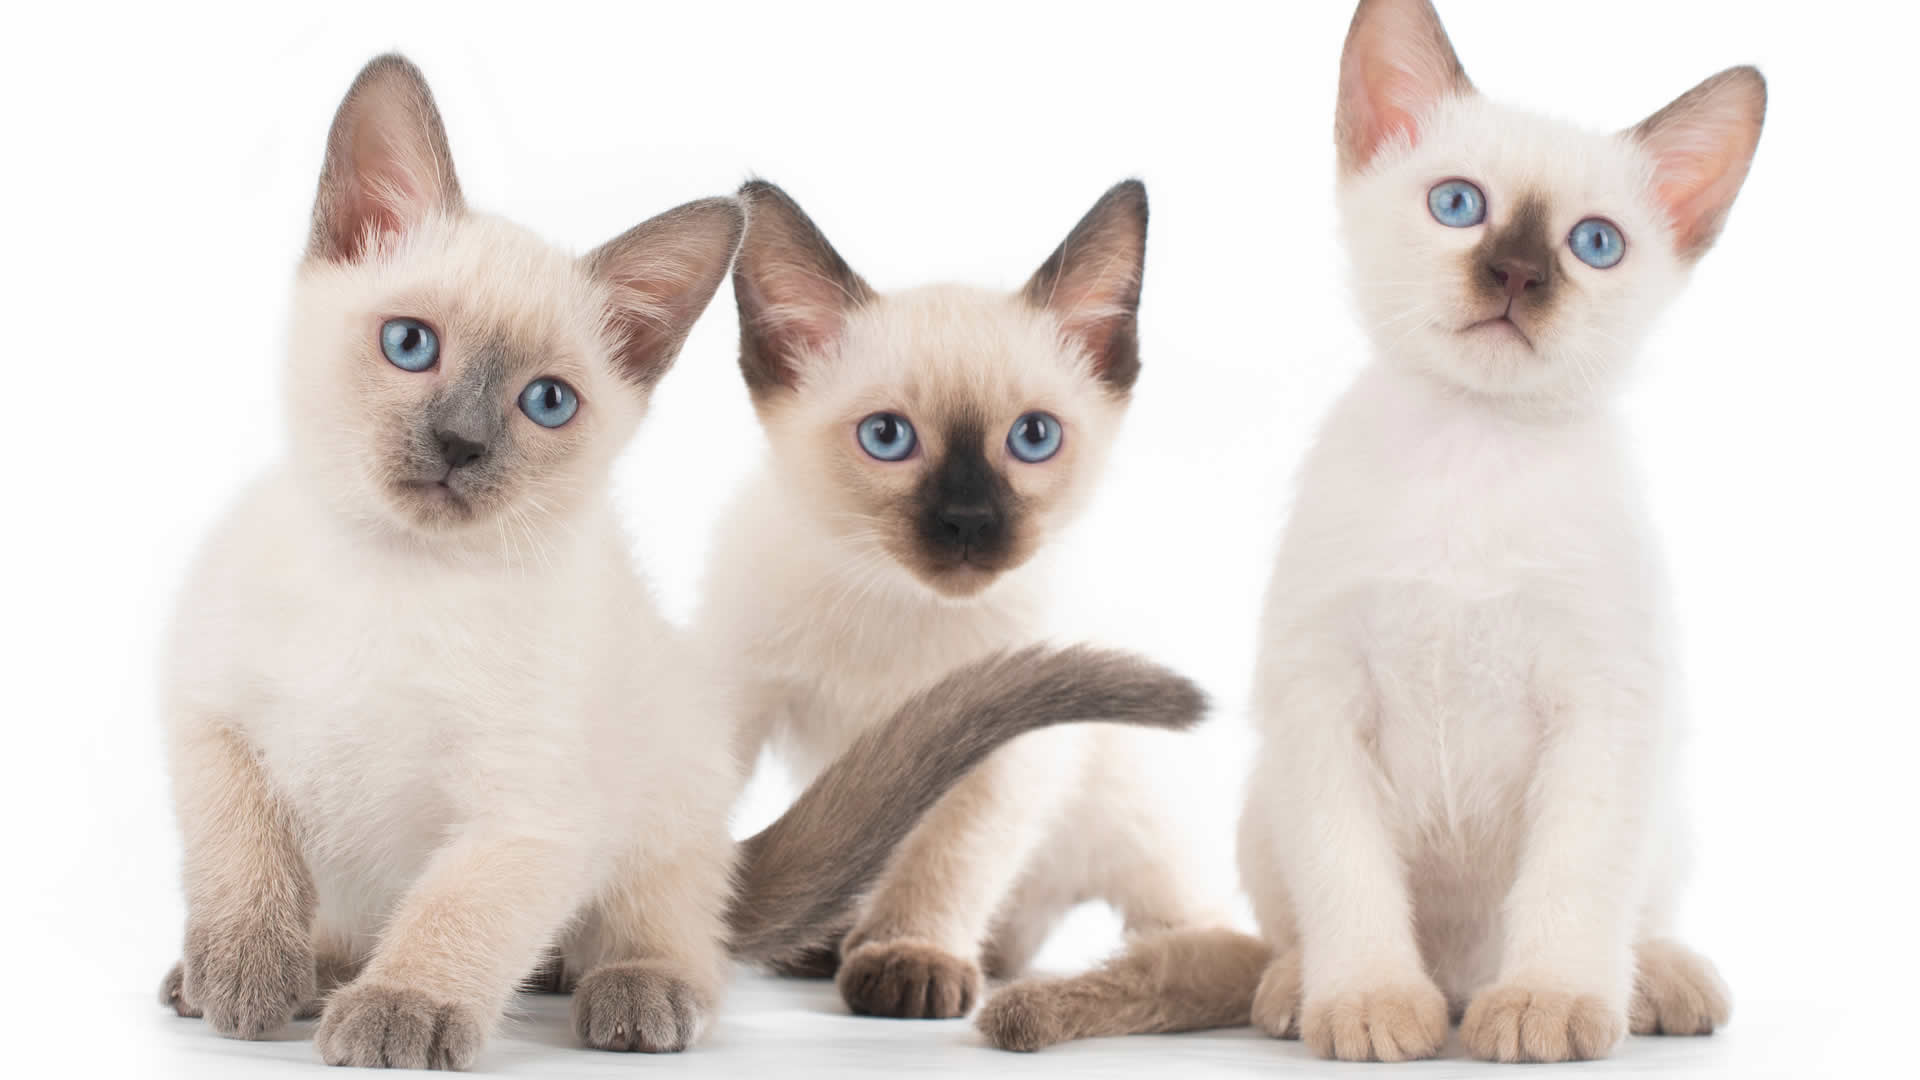 Siamese cats used to be known for their crooked eyes and curly tails